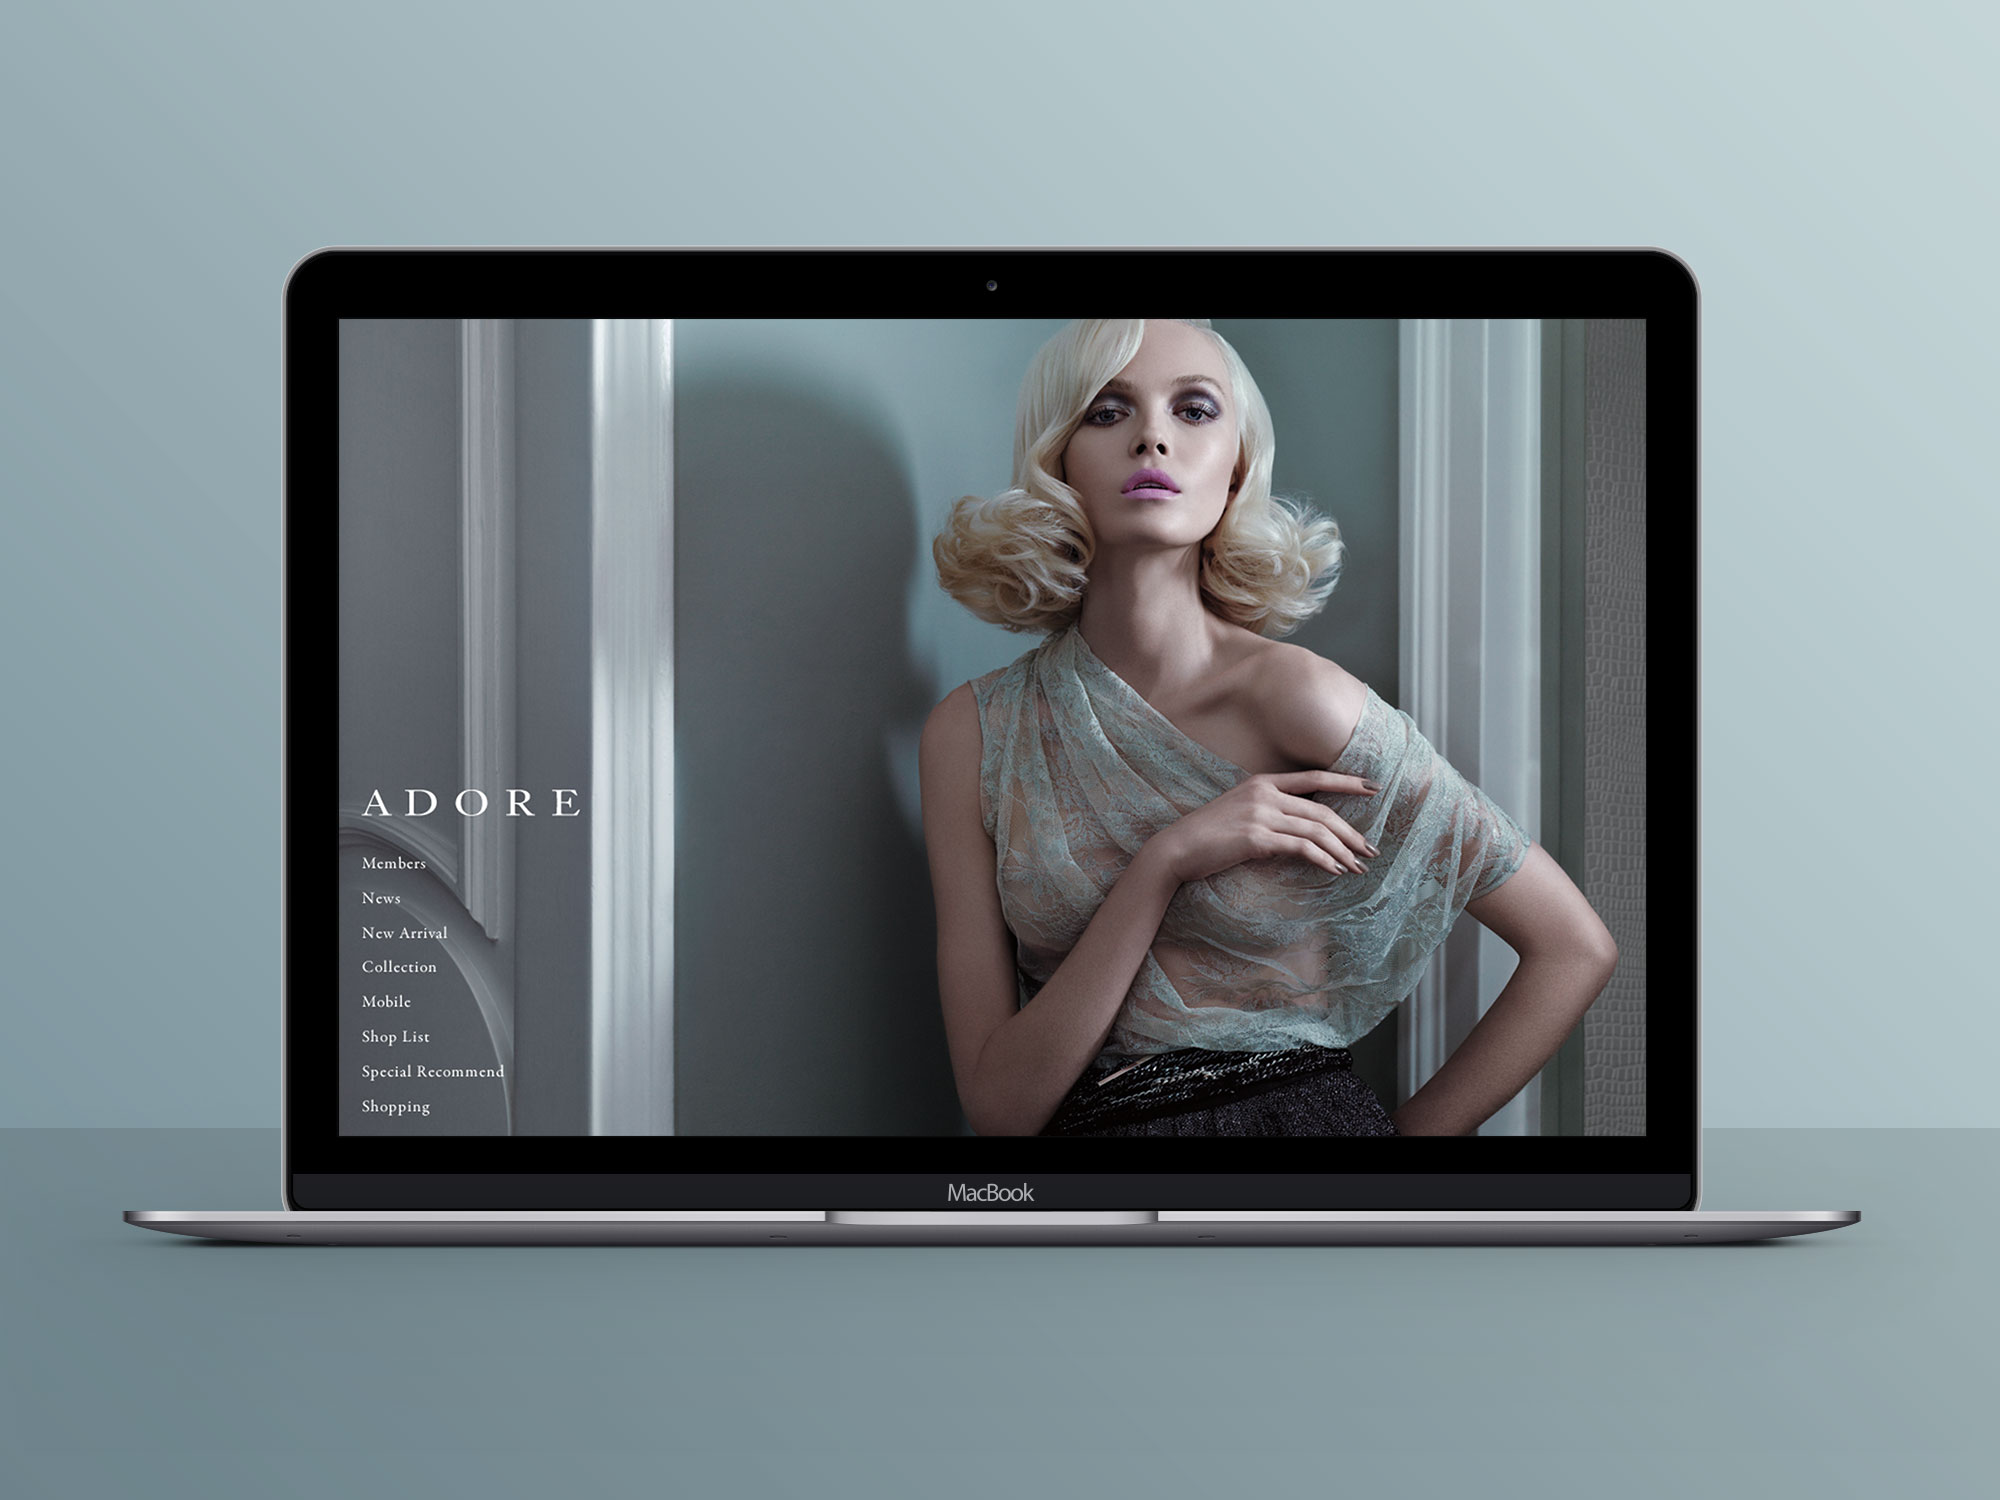 adore Official Web Site Design